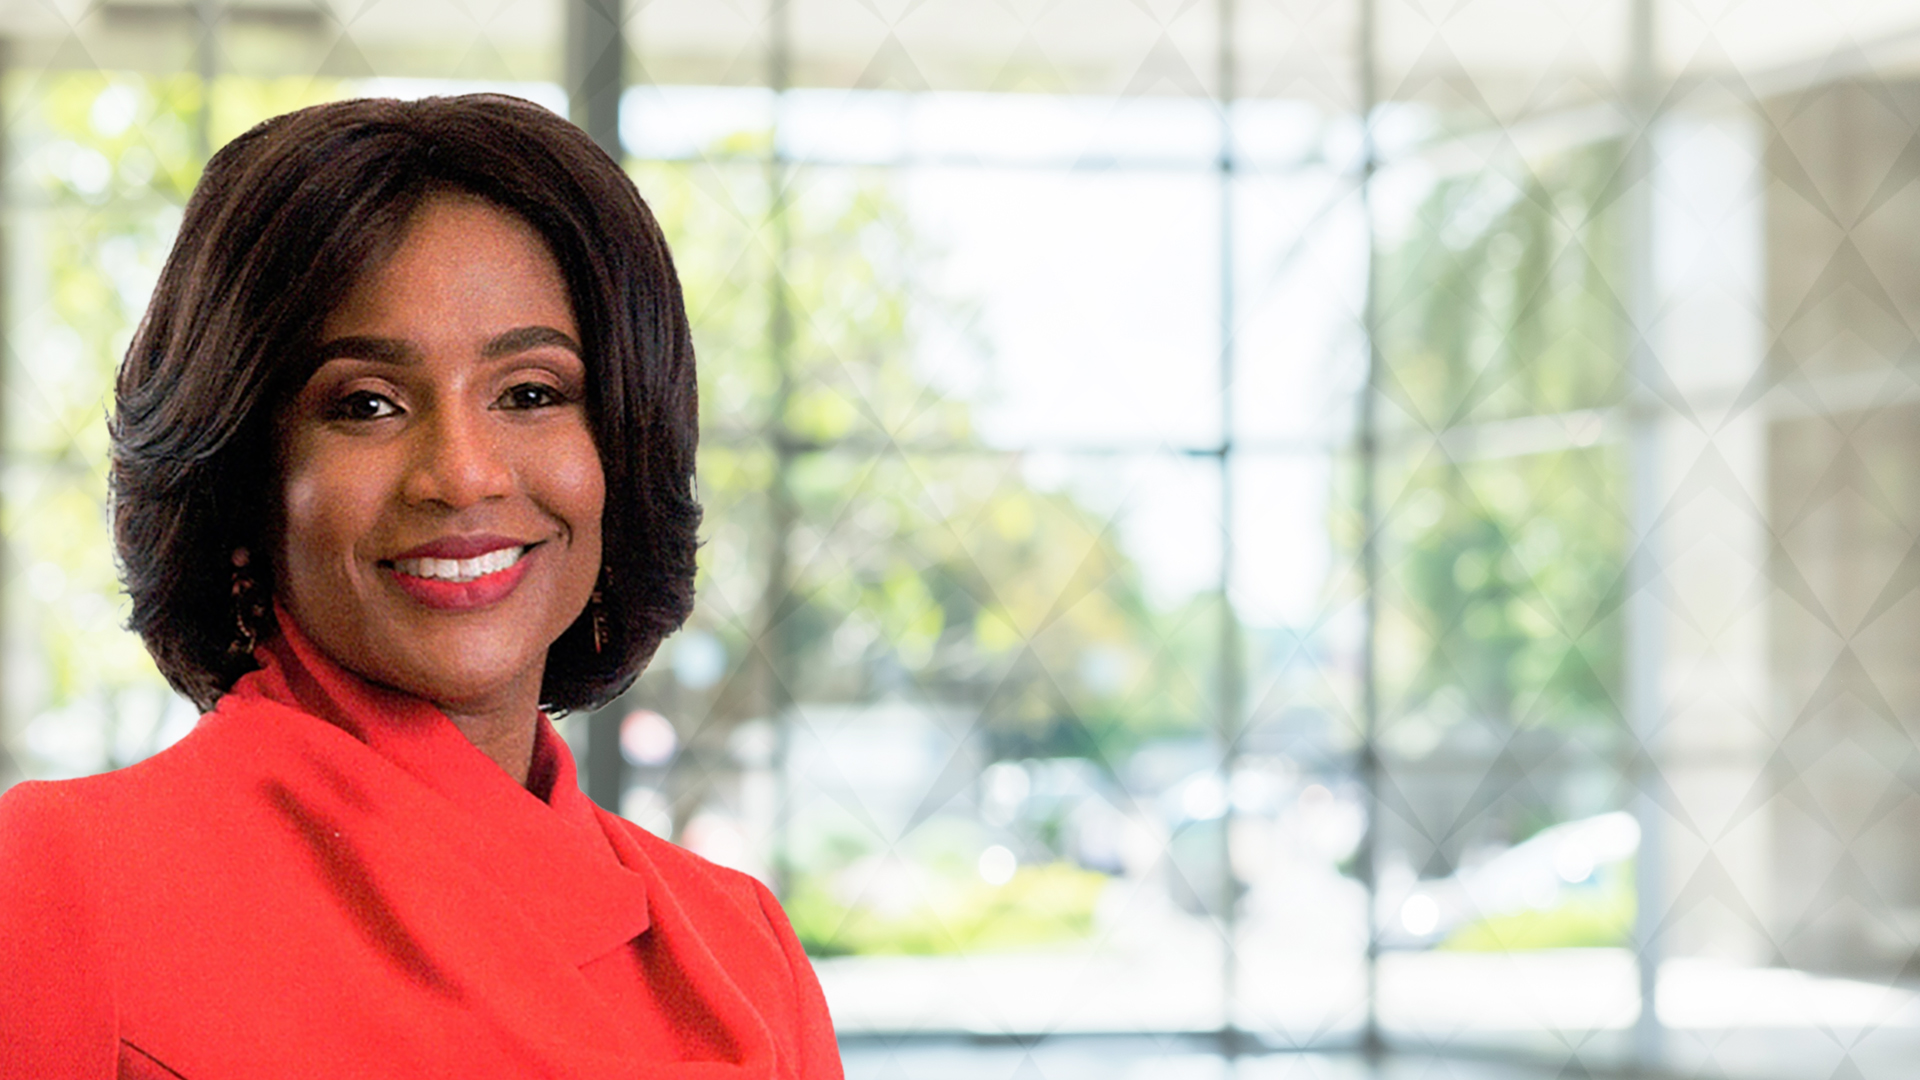 Norton Rose Fulbright appoints Shauna Clark as its Global Chair and US Chair